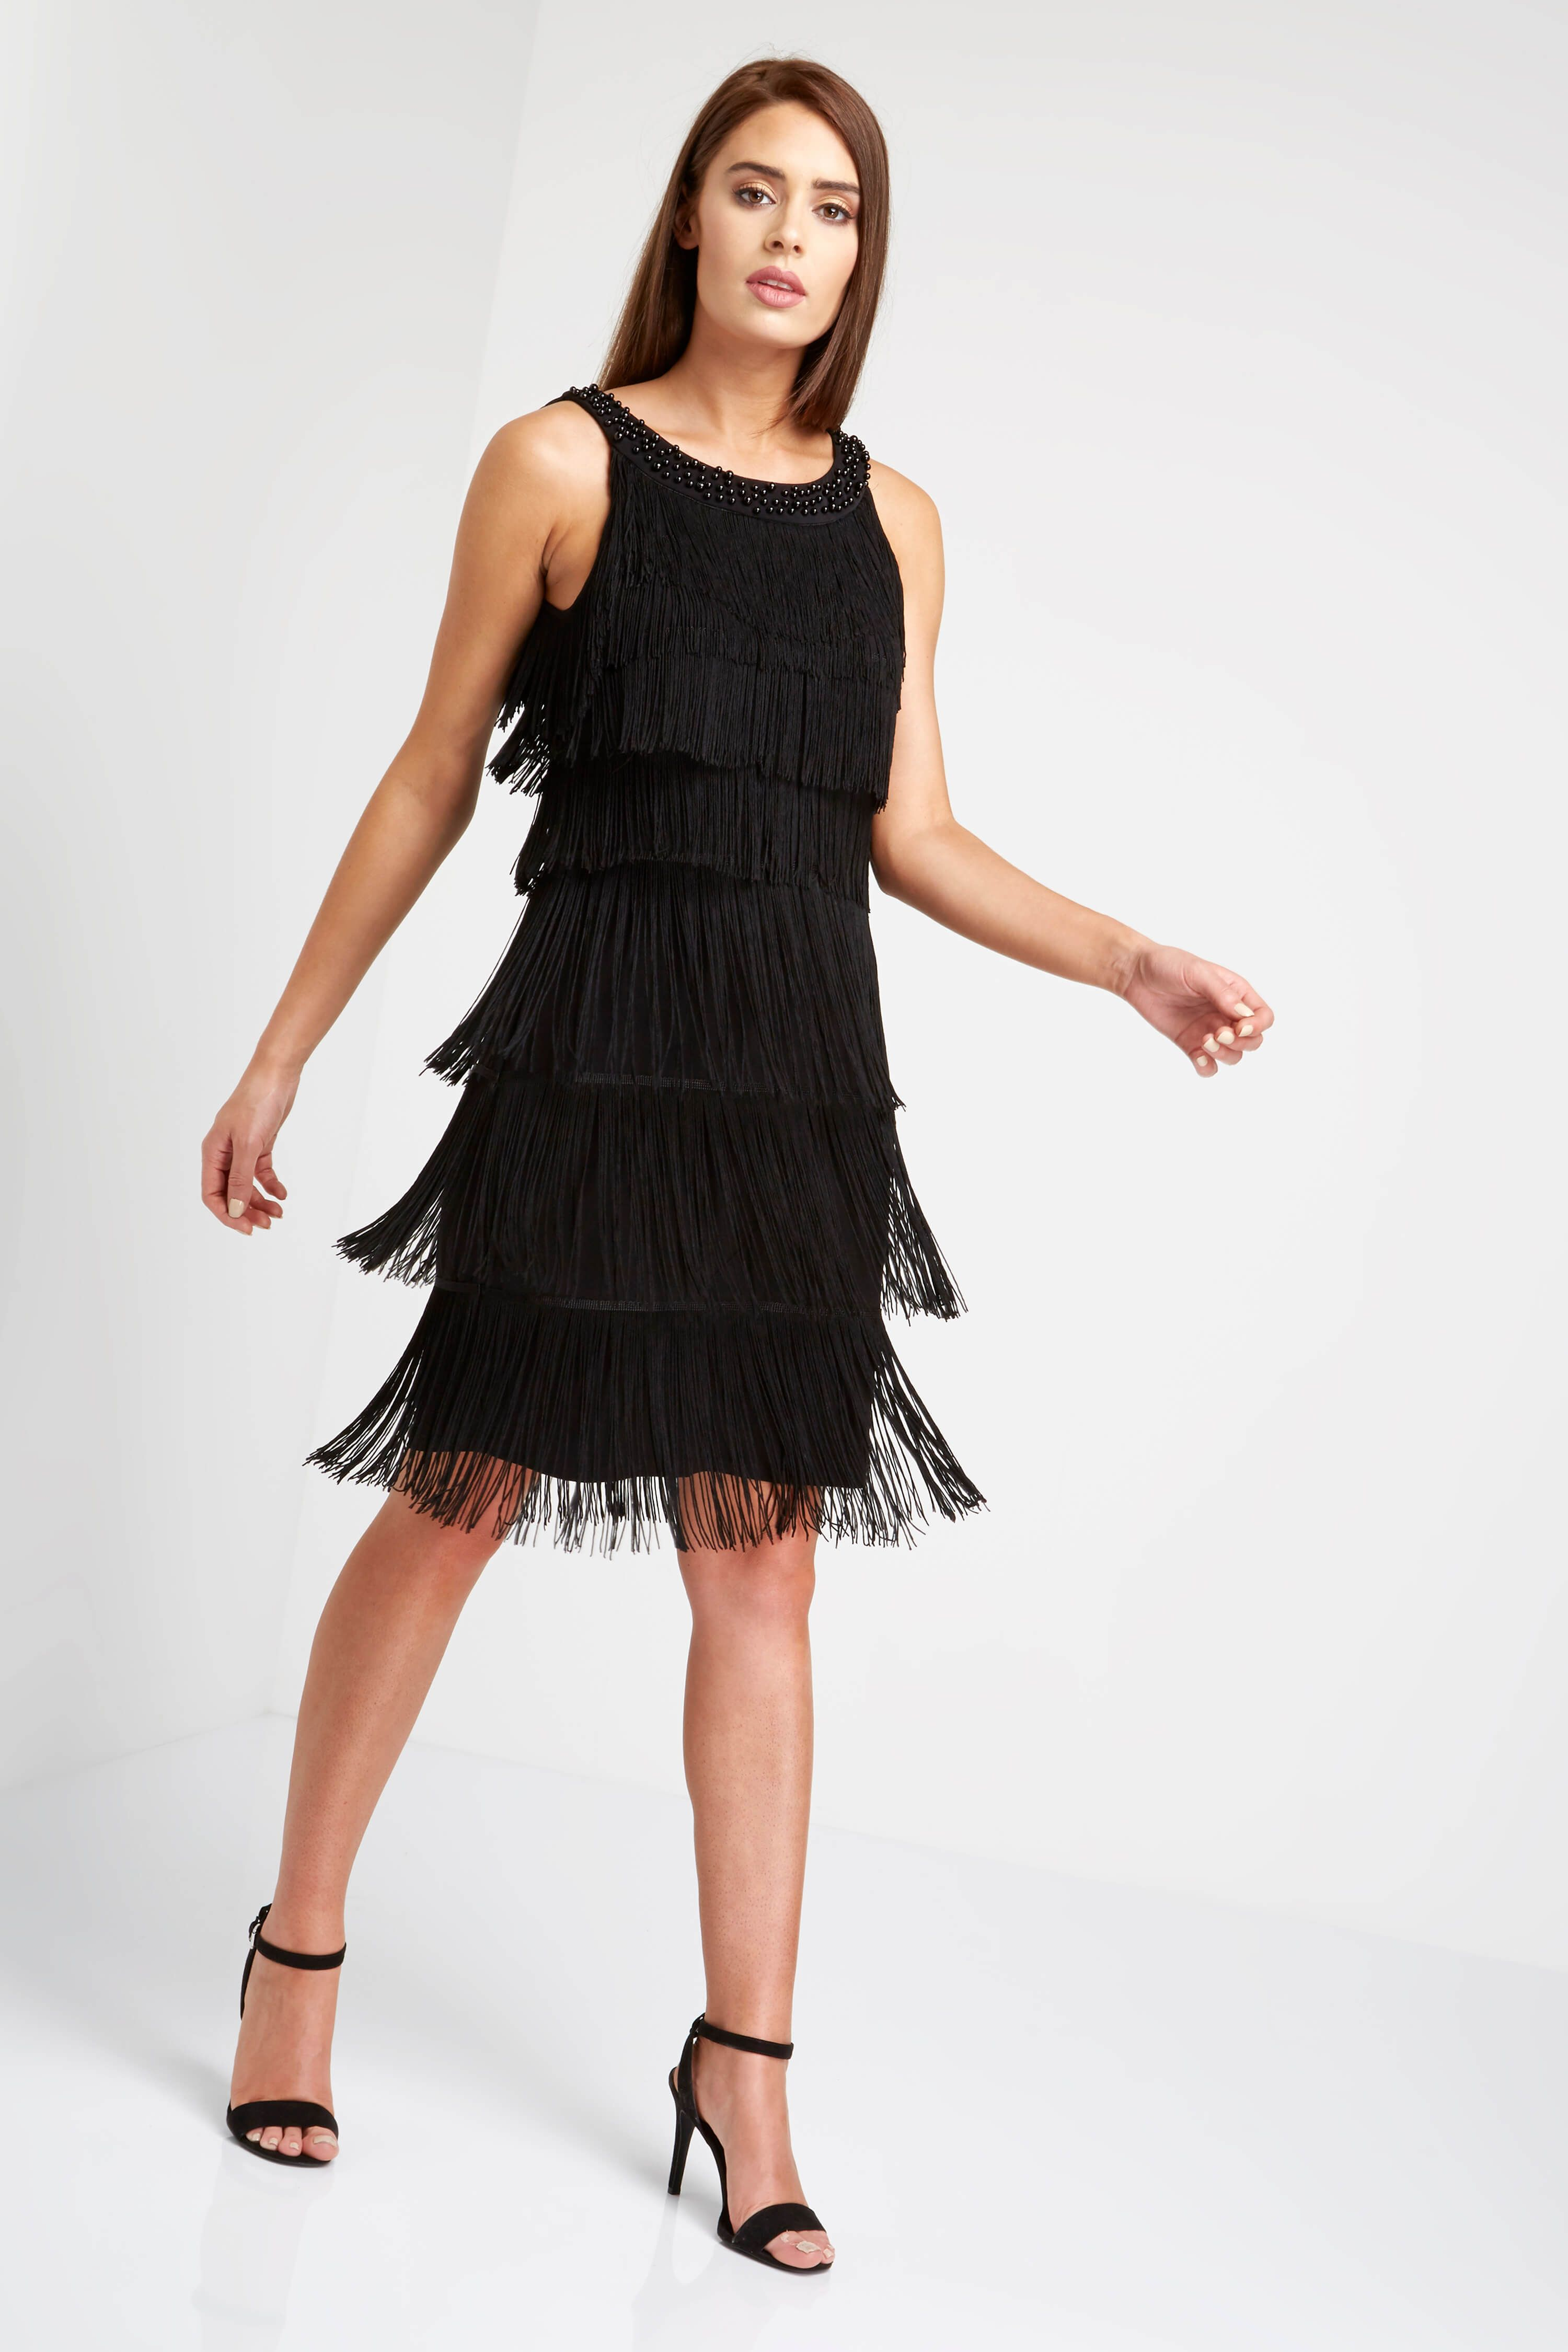 6a26082168cb Embelished Flapper Dress - Free UK Delivery - 10 12 14 16 18 20 - A layered  fringe dress with a chic sequin trim neckline, this fully lined flapper  dress is ...